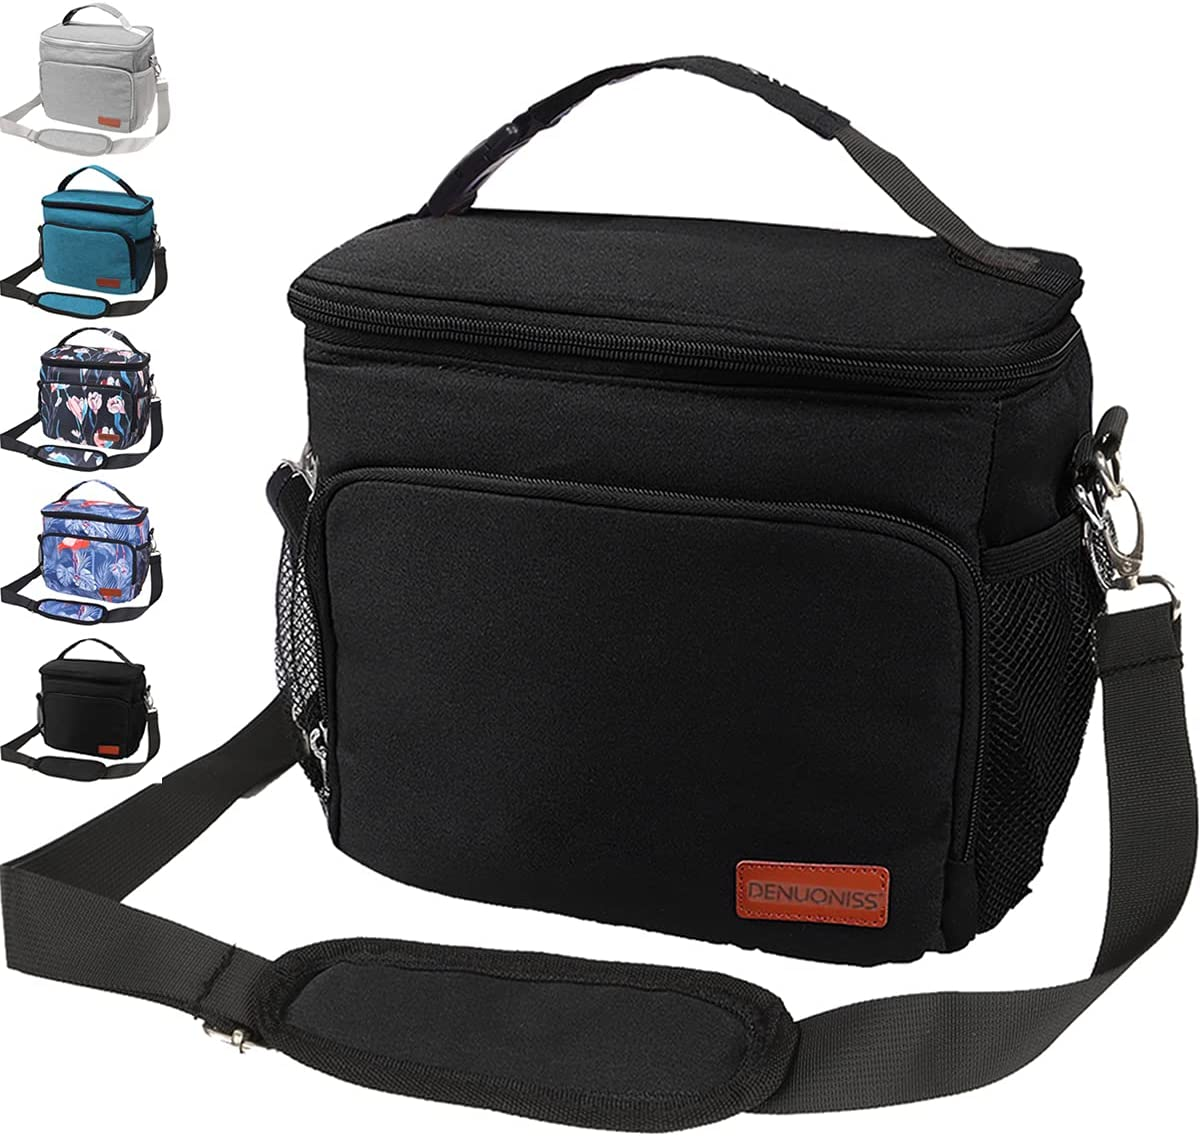 Insulated Lunch Bag Thermal Lunch Box Bento Cooler Tote Reusable Lunch Bags for Women Men Kids,12-Can Medium New Upgrade Leakproof Hielera with Hands-free Buckle Handle Shoulder Strap